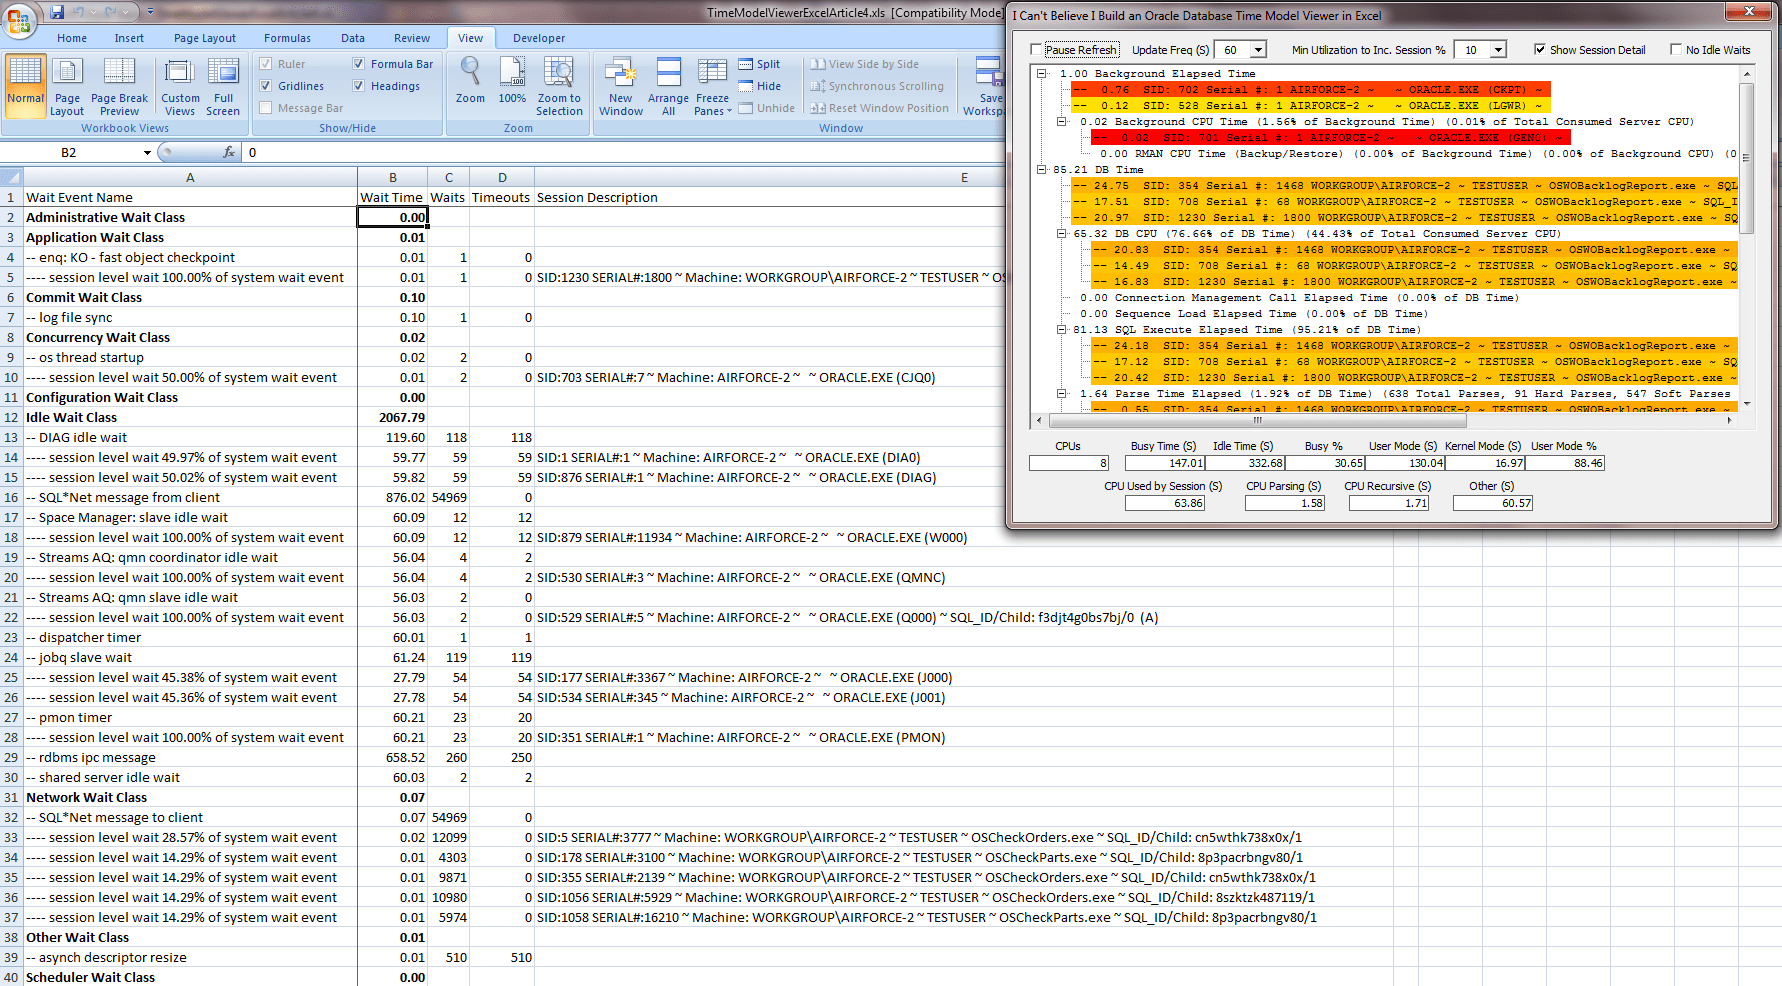 Oracle Database Time Model Viewer In Excel 6